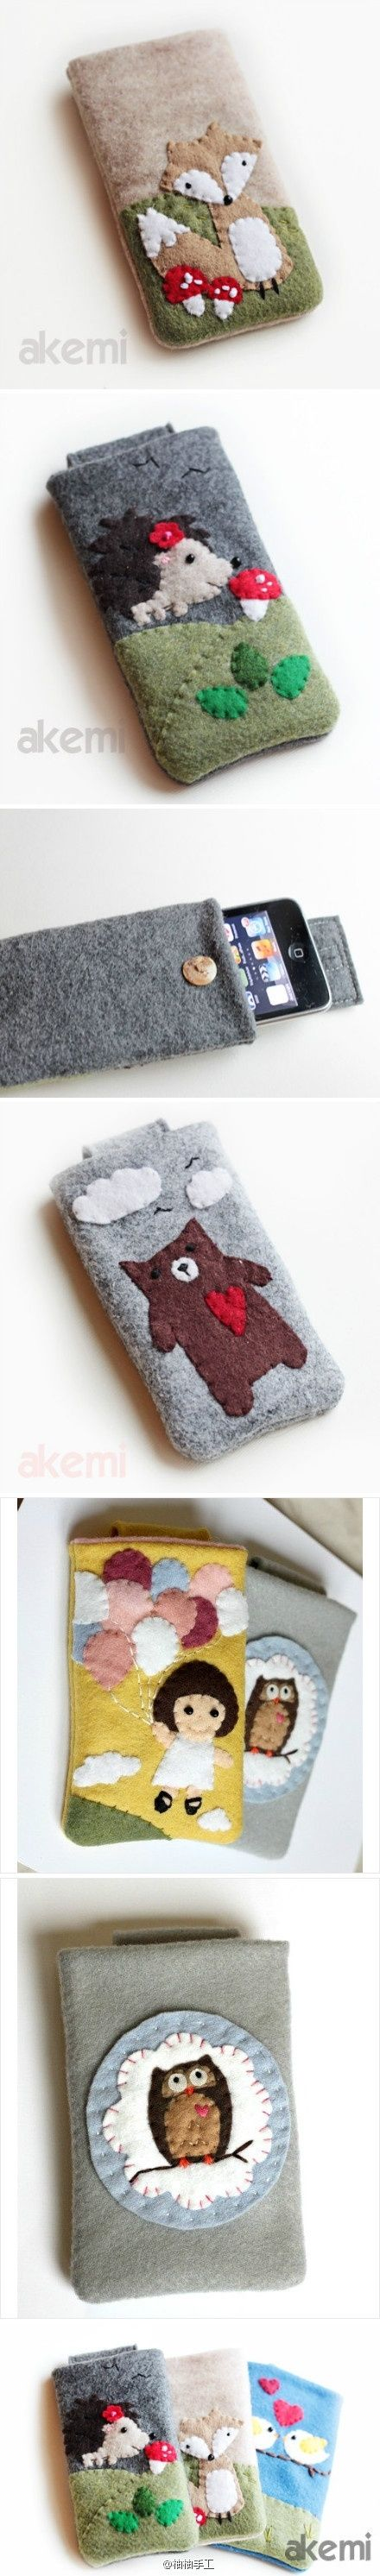 these are super cute! I wonder how hard it would be to make my own...